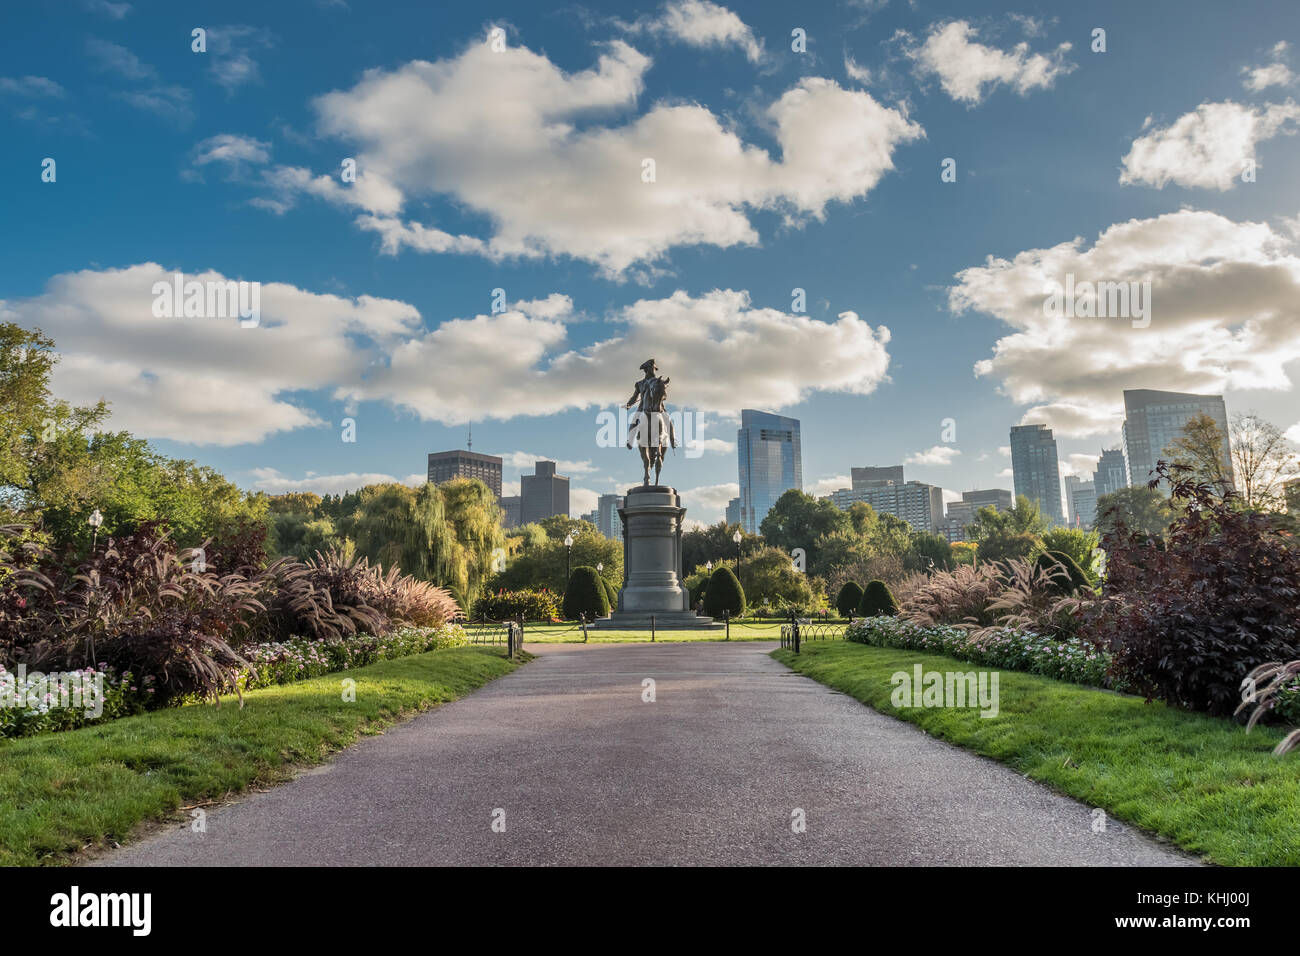 Boston, United States: October 13, 2017: Looking Down Walkway to Washington Statue in Boston Public Garden - Stock Image